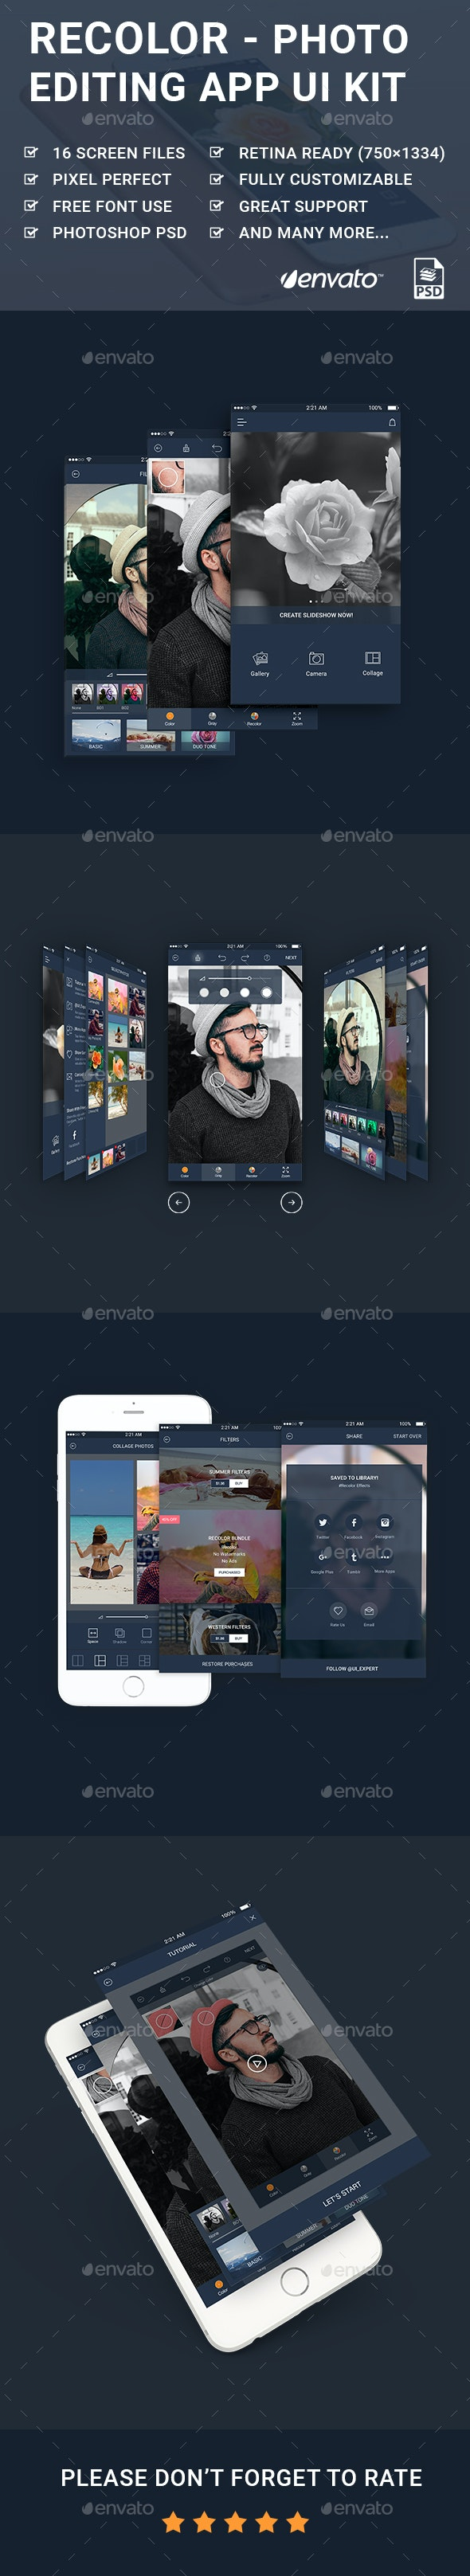 Recolor - Photo Editing Mobile App UI Kit